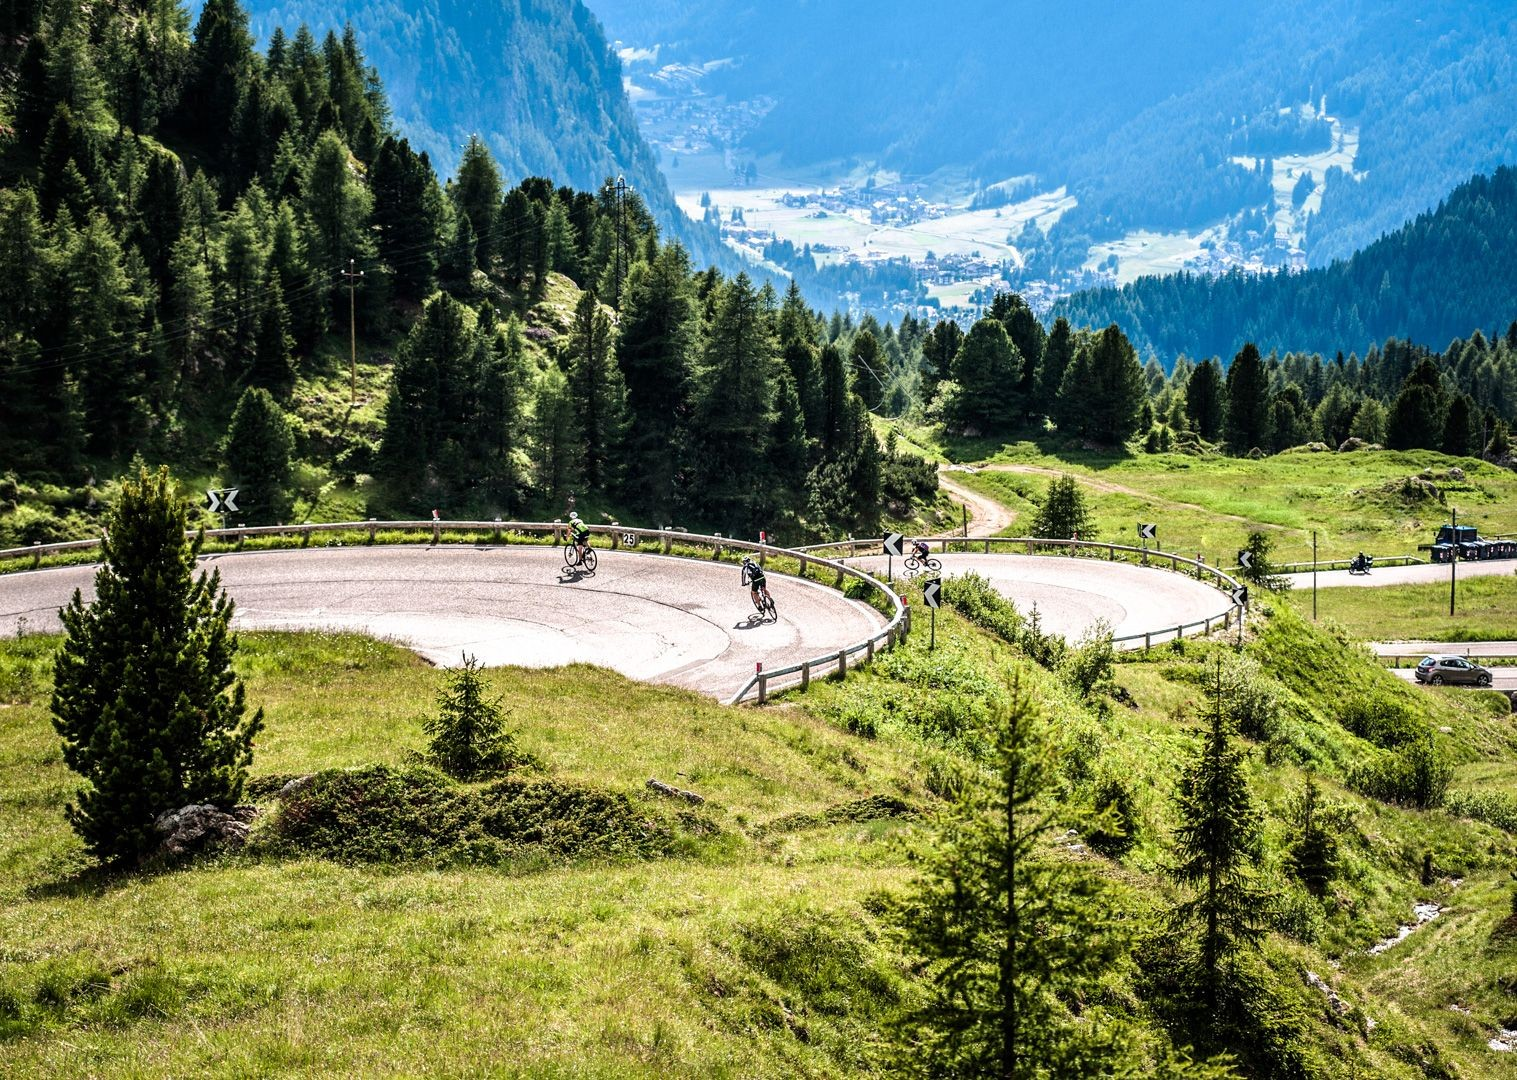 climb-the-zoncalan-italian-dolomites-guided-road-cycling.jpg - Italy - Italian Dolomites - Guided Road Cycling Holiday - Italia Road Cycling